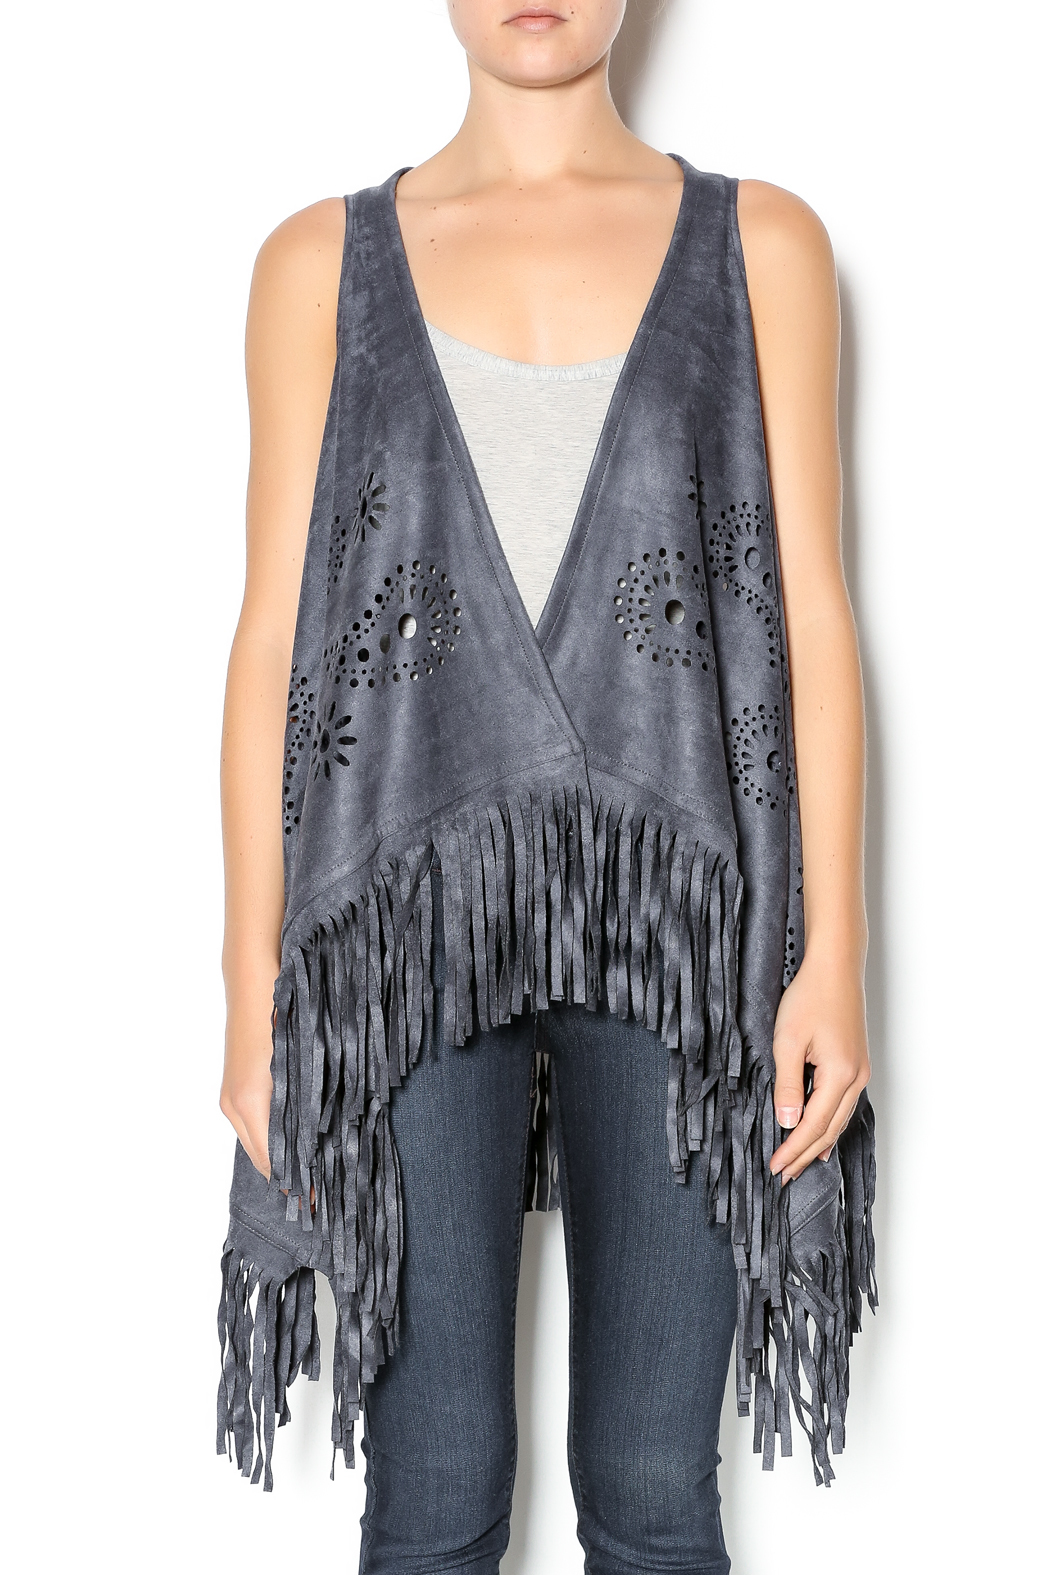 71b5b20f832b3 Gena Accessories Boho Fringe Vest from Wyckoff by Bedford Basket ...